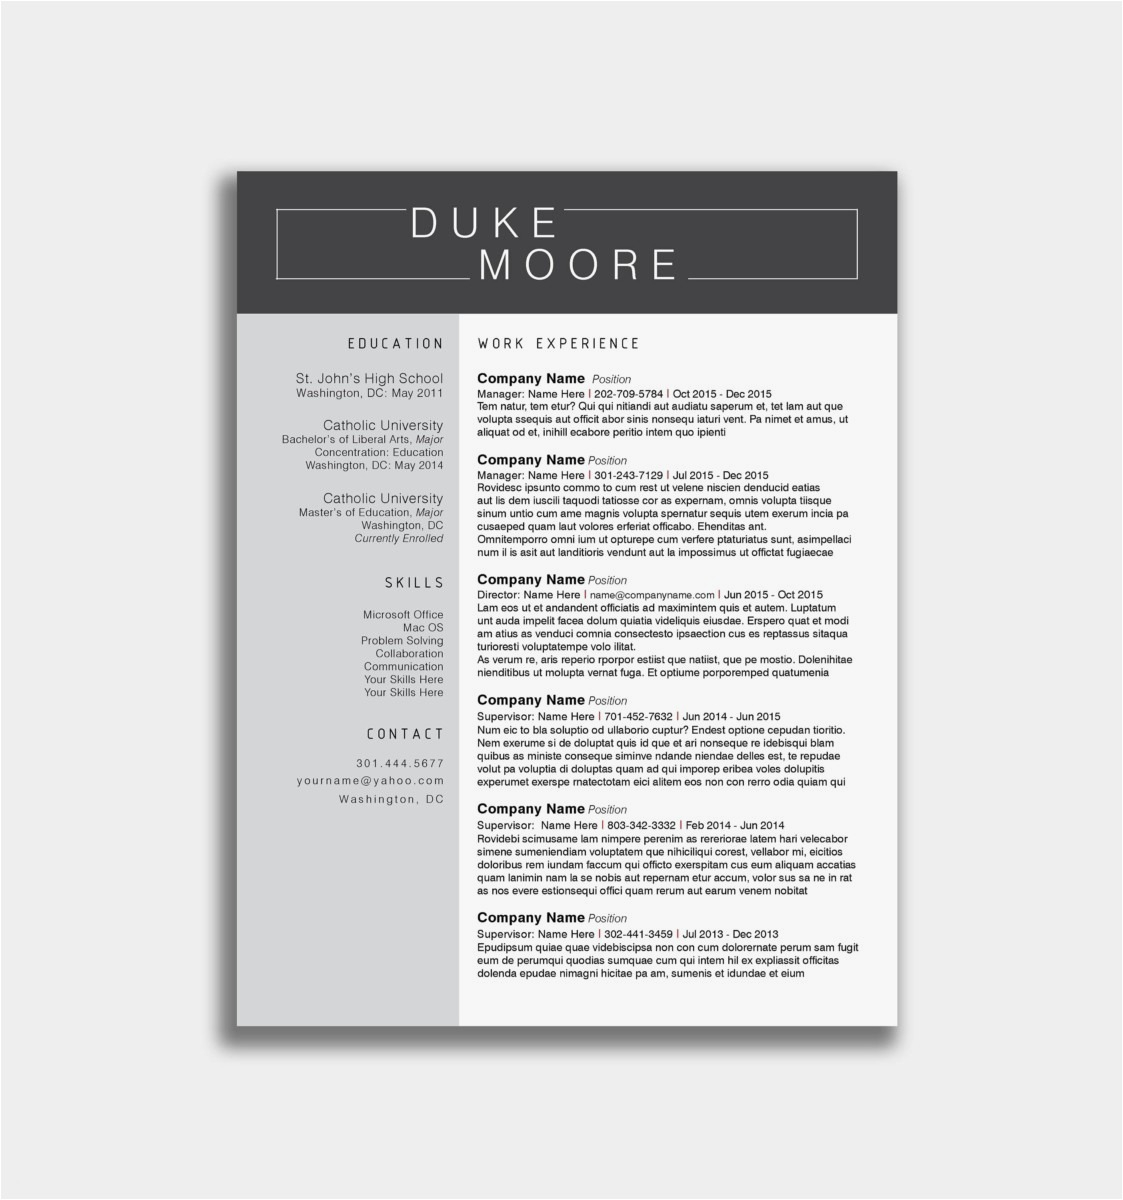 Fax Cover Letter Template Word - Professional Resume Cover Letter Example Professional Resume